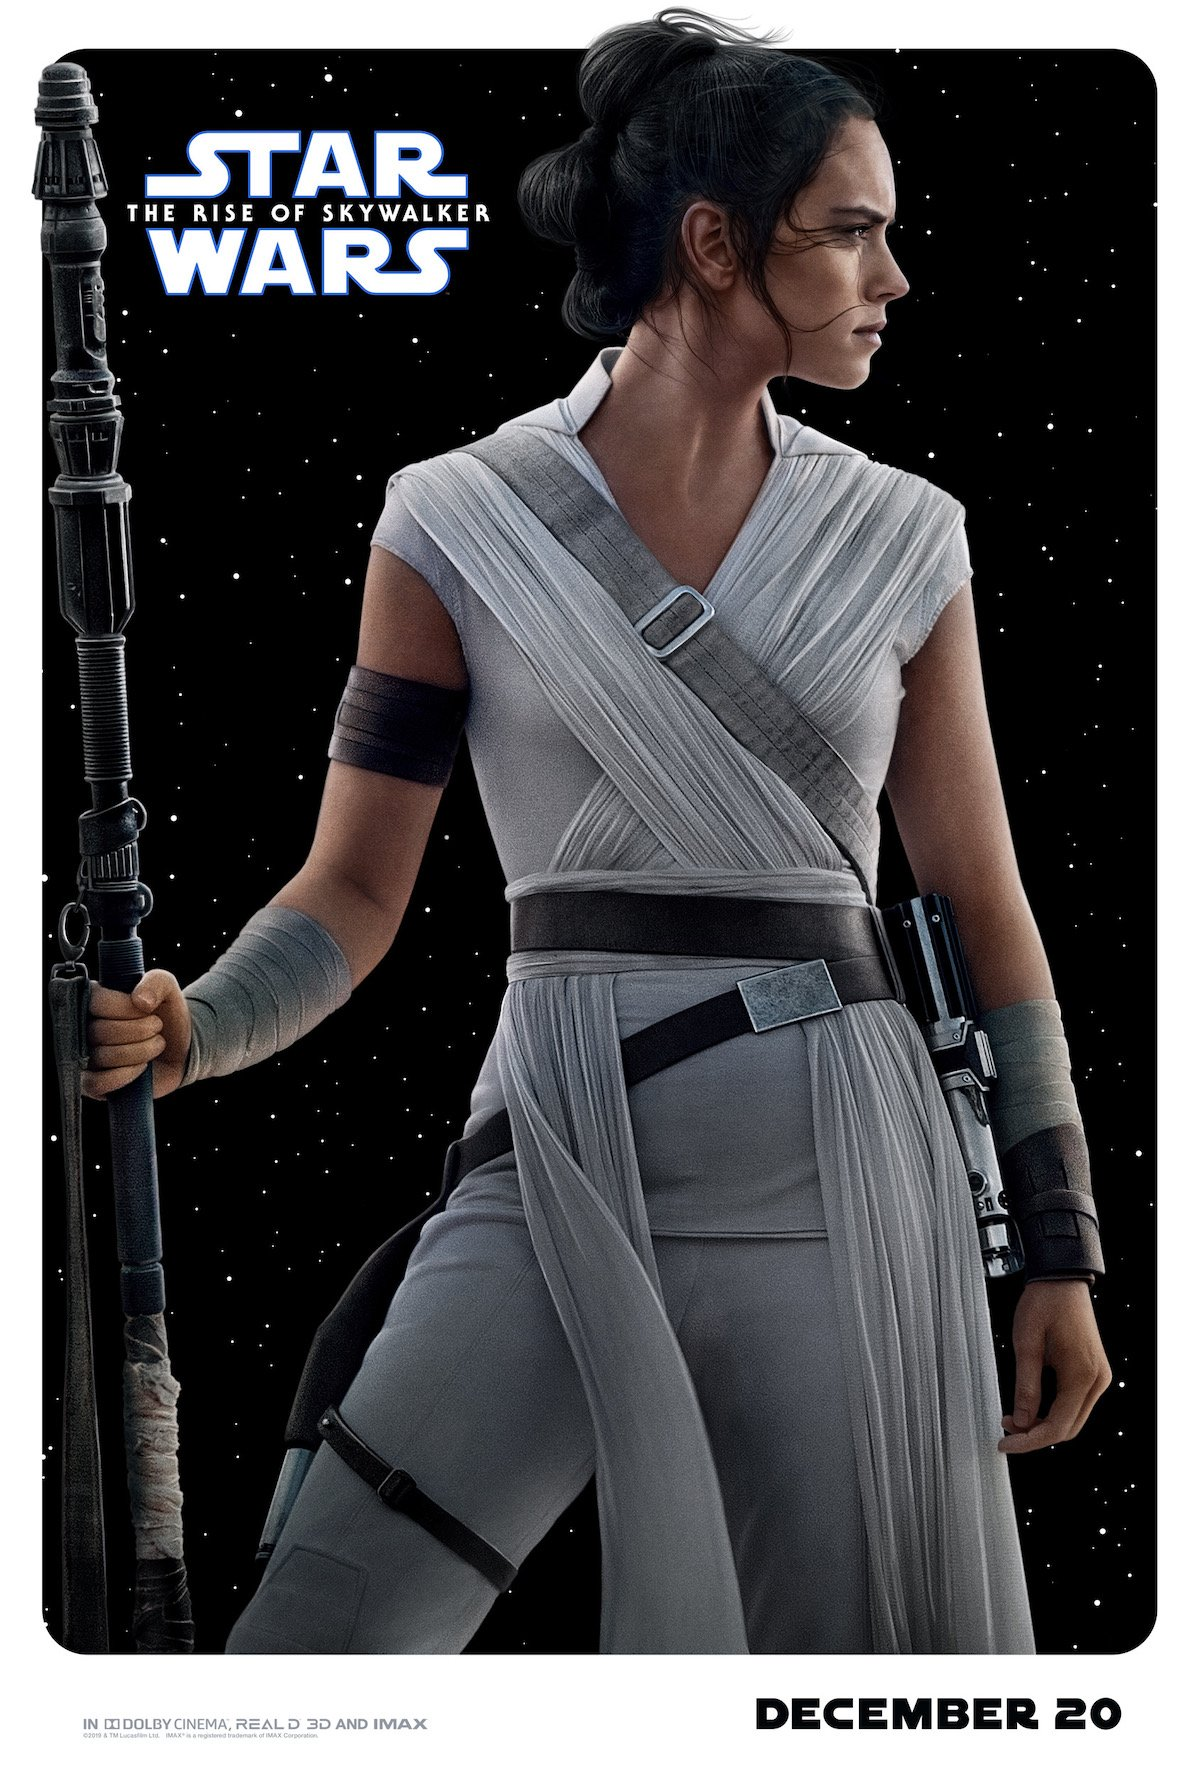 Daisy Ridley as Rey in Rise of Skywalker character poster